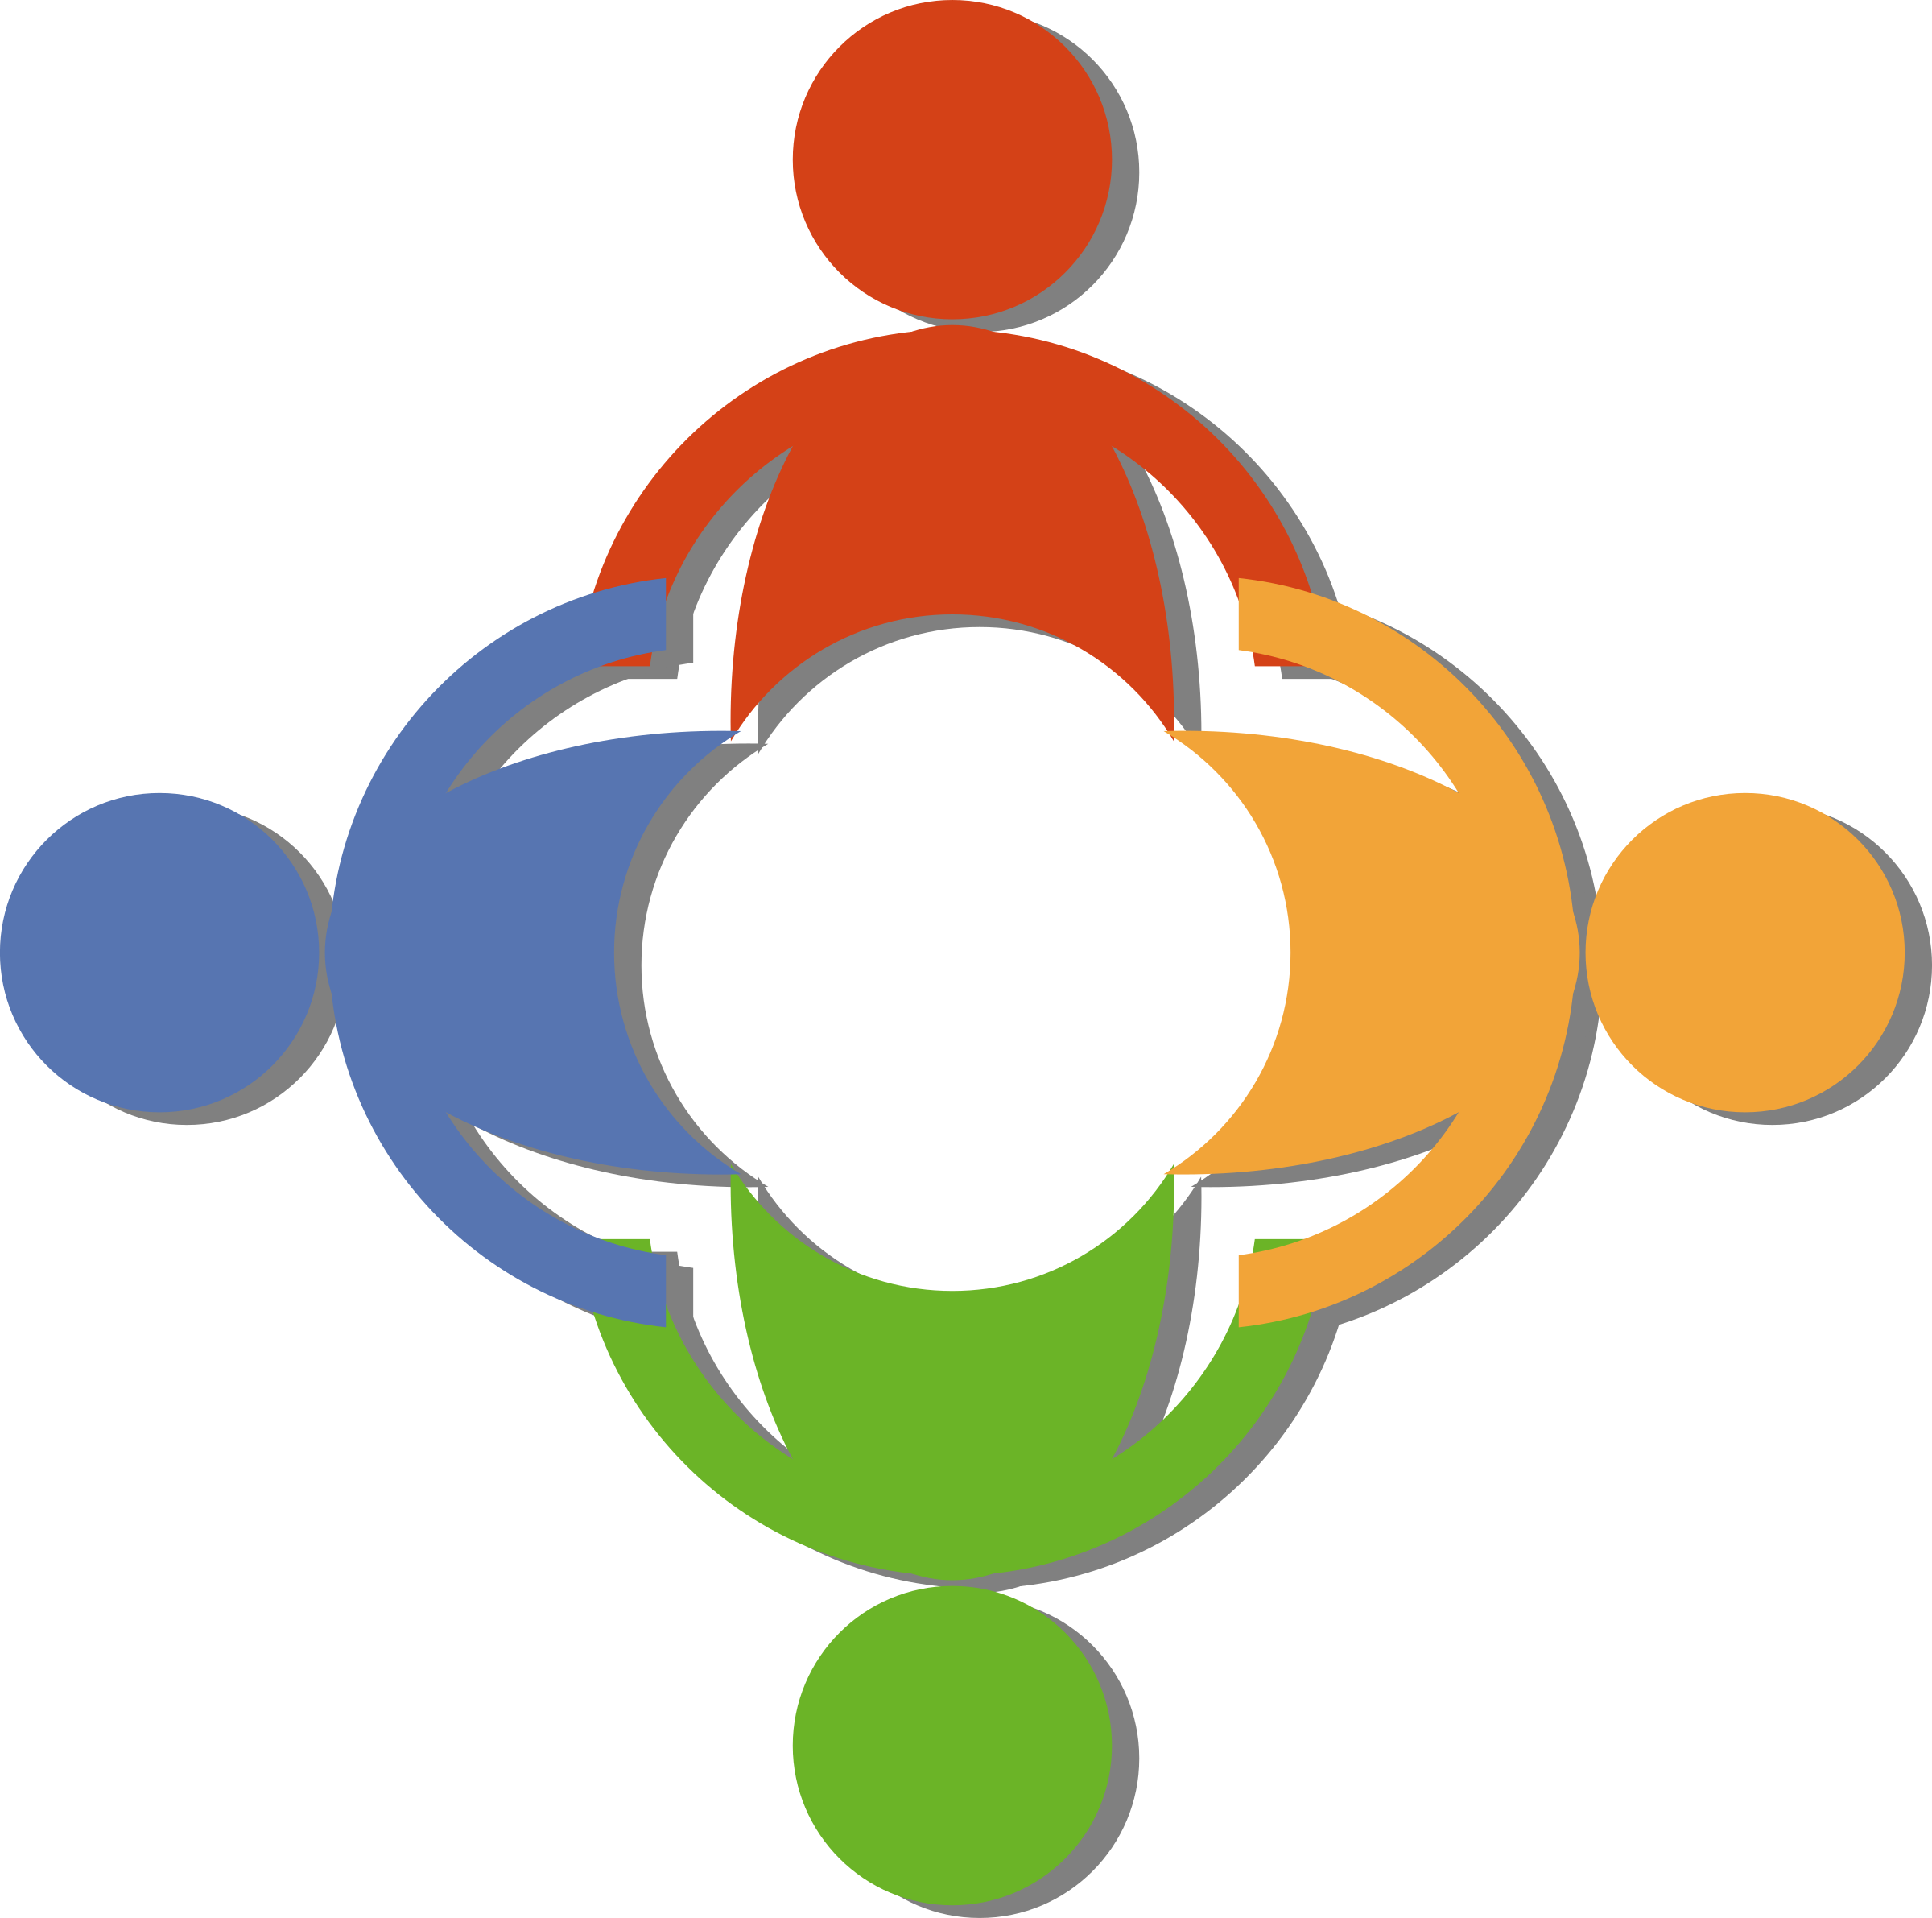 2400x2382 Community By @russel, A Community Logo With Persons Holding Hands